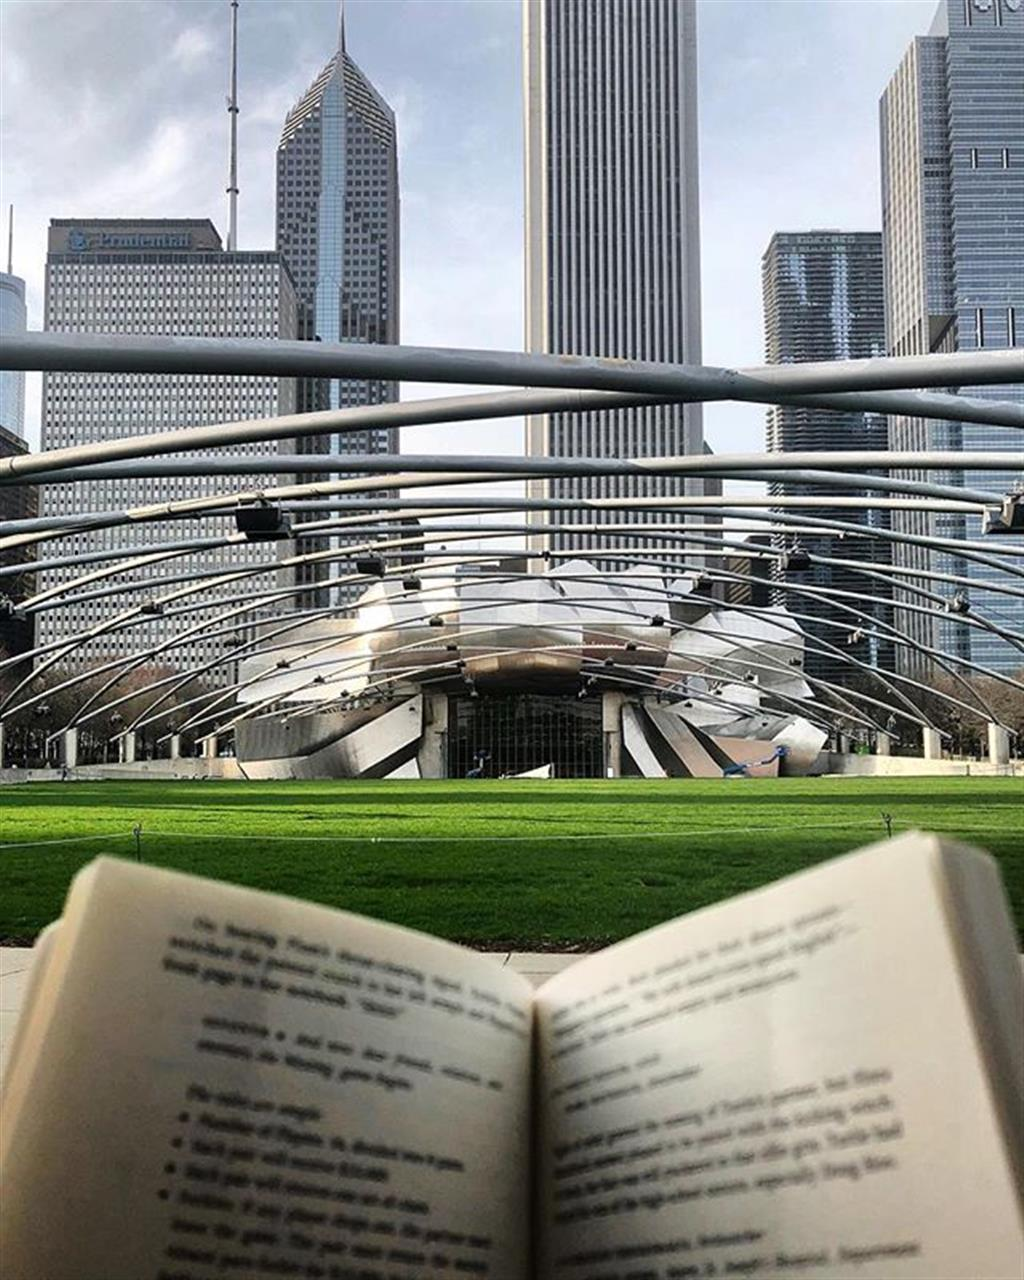 Looking for favorite spots in the city to sit and delve into a good book. This bench in the heart of @millennium_park is a perfect lunchtime getaway. .. .. #chi #chicago #milleniumpark #realestate #read #book #bookworm #leadingrelocal #lunch #bairdwarner #chicagorealestate #lakeshore #lakeshoreeast #lakeshoreeastrealestate #liveauthentic #livelocal #randolphstreet #pritzkerpavilion #thebean #cloudgate #hideaway #goodbooks